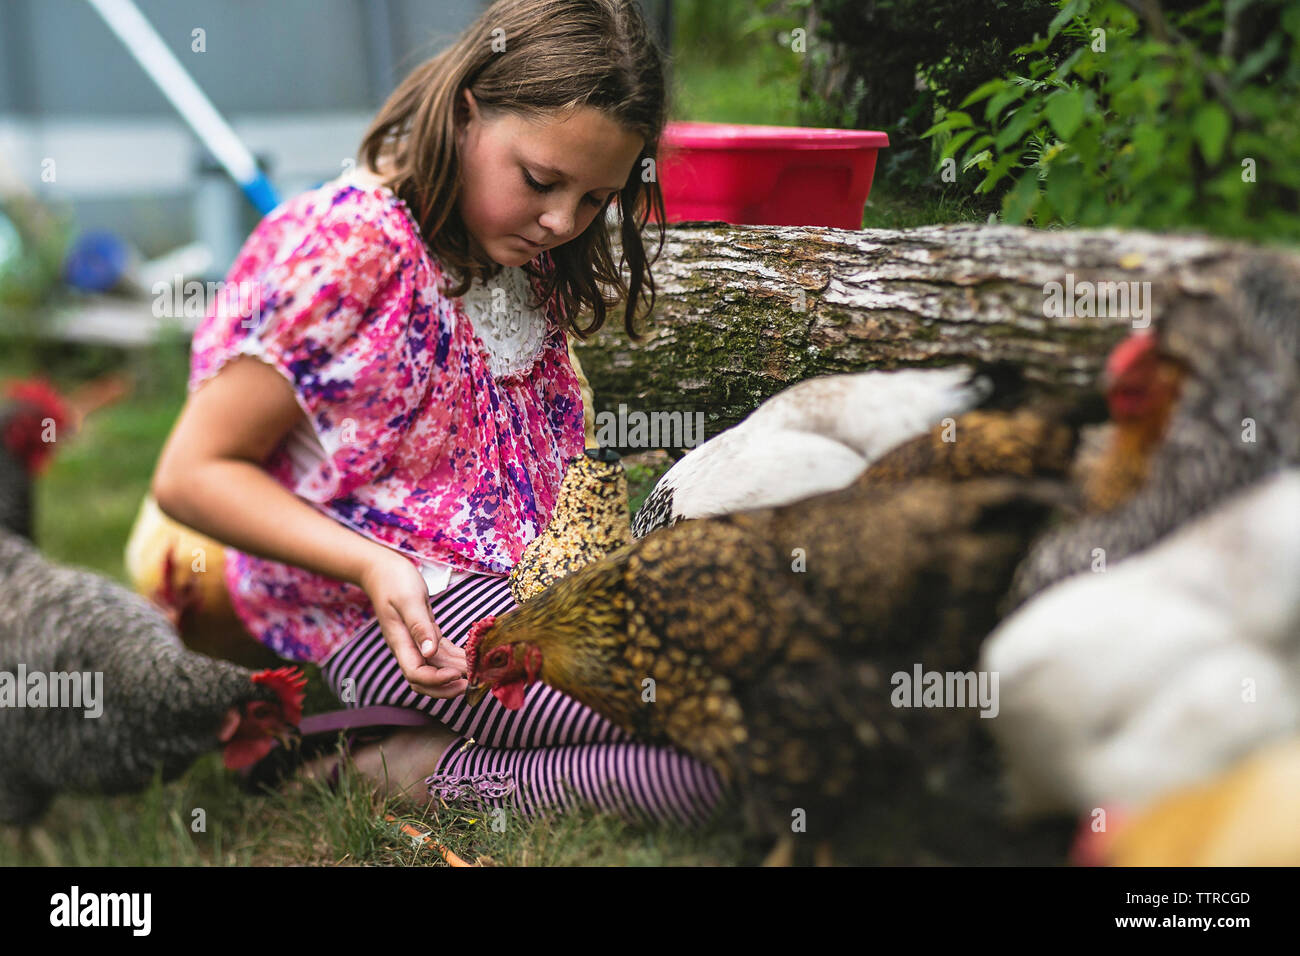 Girl playing with hens in backyard - Stock Image